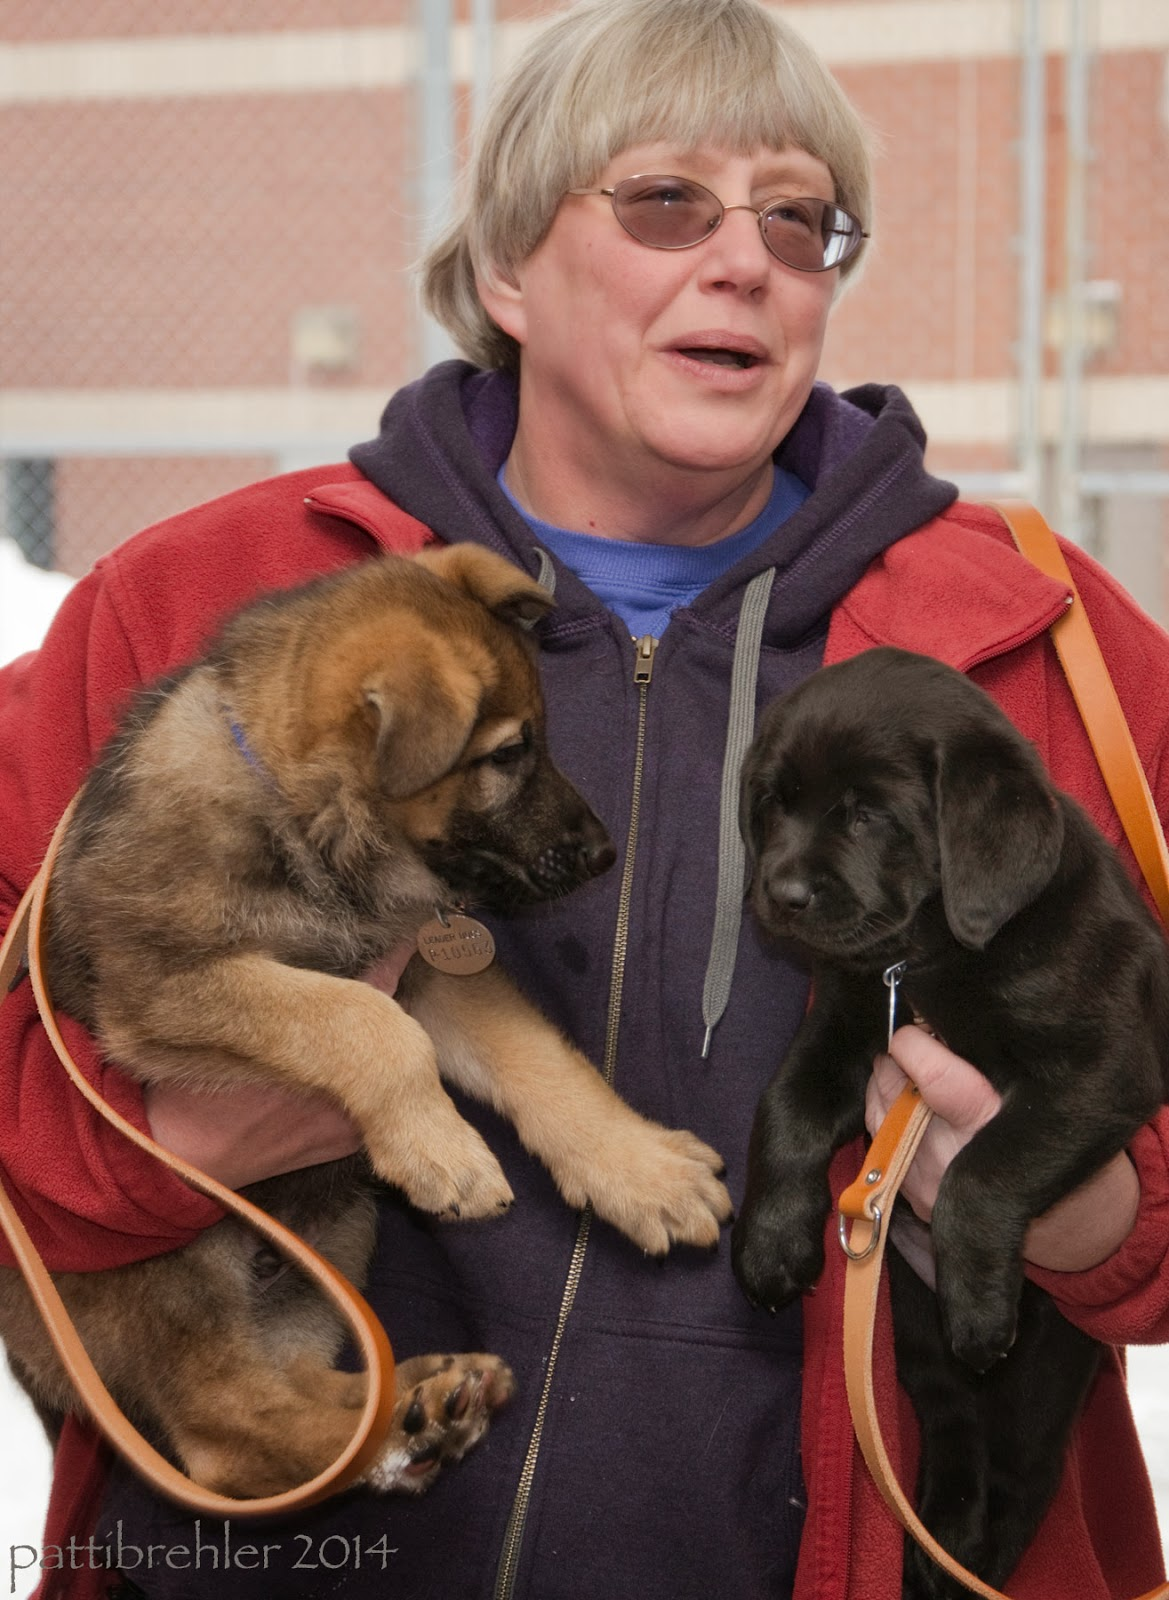 A white-haired woman wearing glasses is carrying a puppy under each arm. She is wearing a maroon fleece jacket over a blue hooded sweatshirt. The puppy on the left is a german shepherd and the puppy on the right is a black lab. Both have brown leashes hanging down.